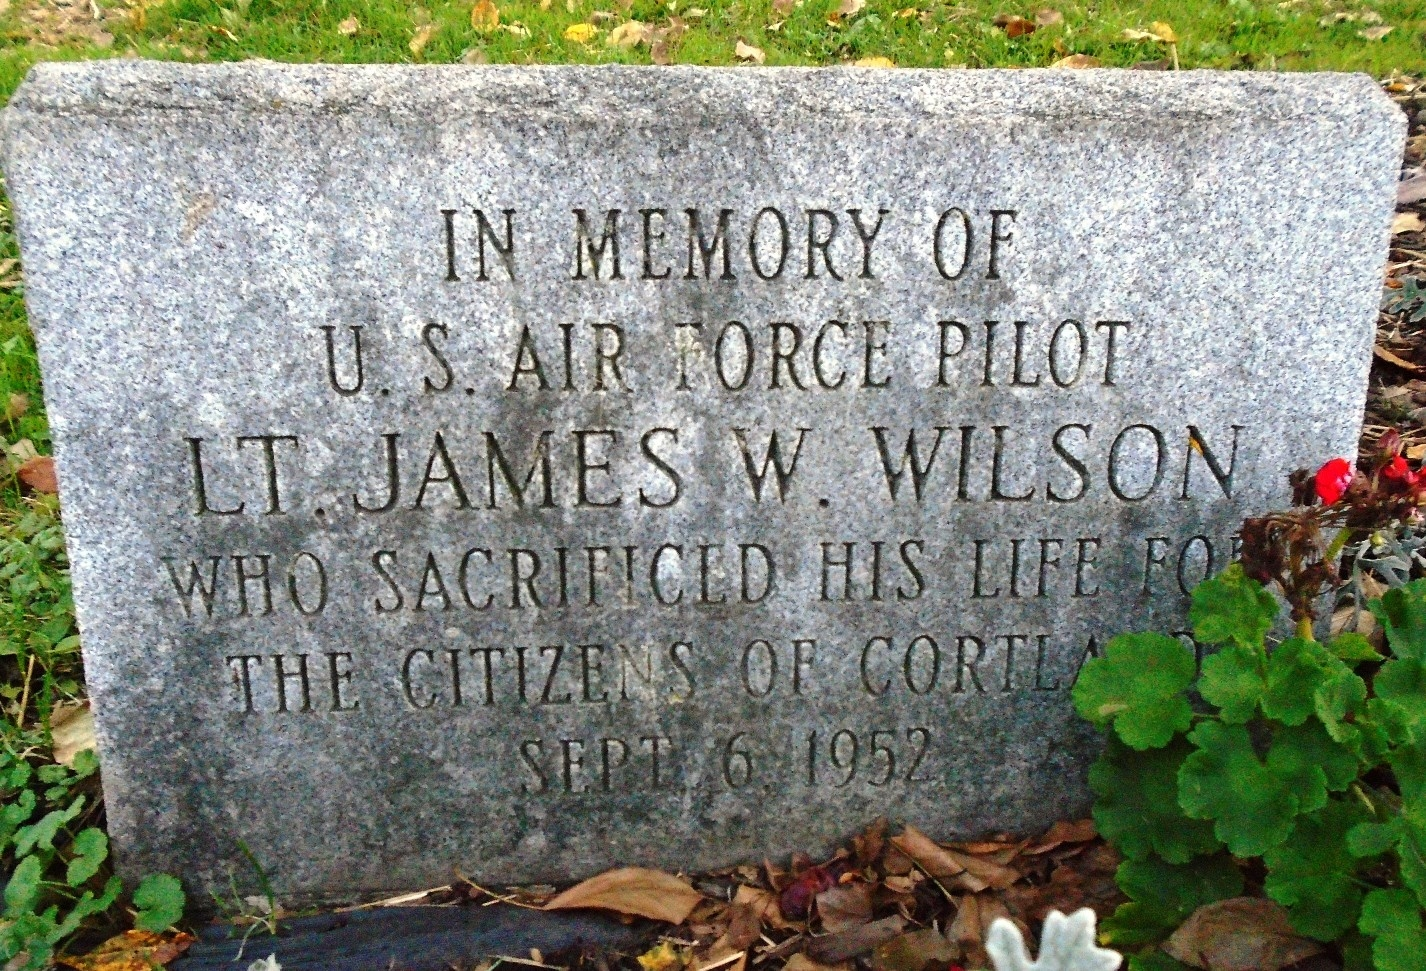 Lt. James W. Wilson Marker